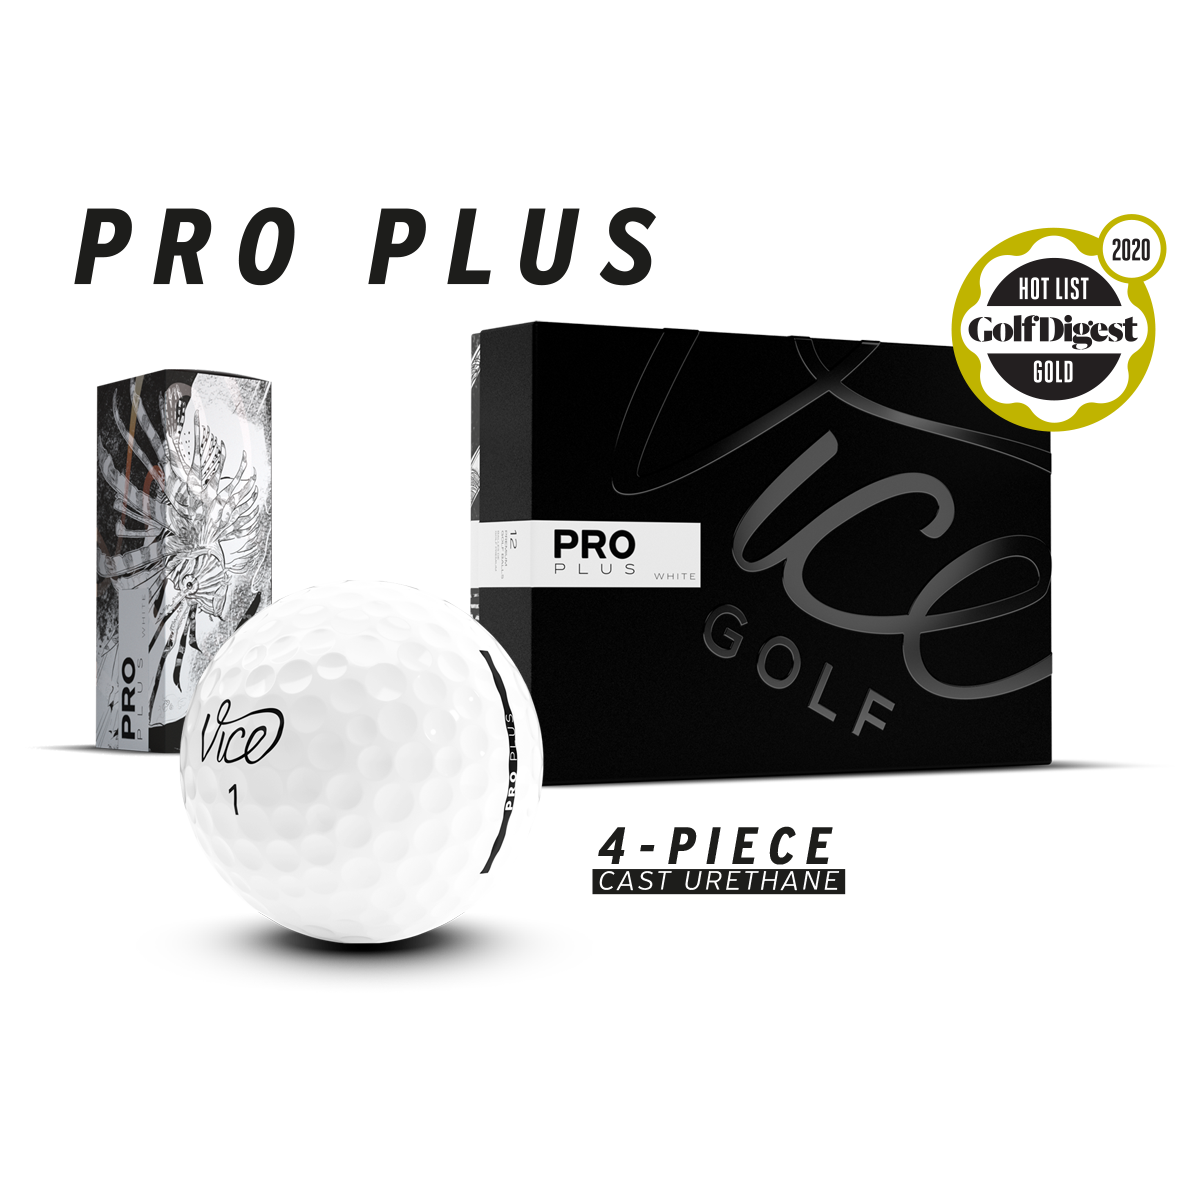 Pro Plus White package